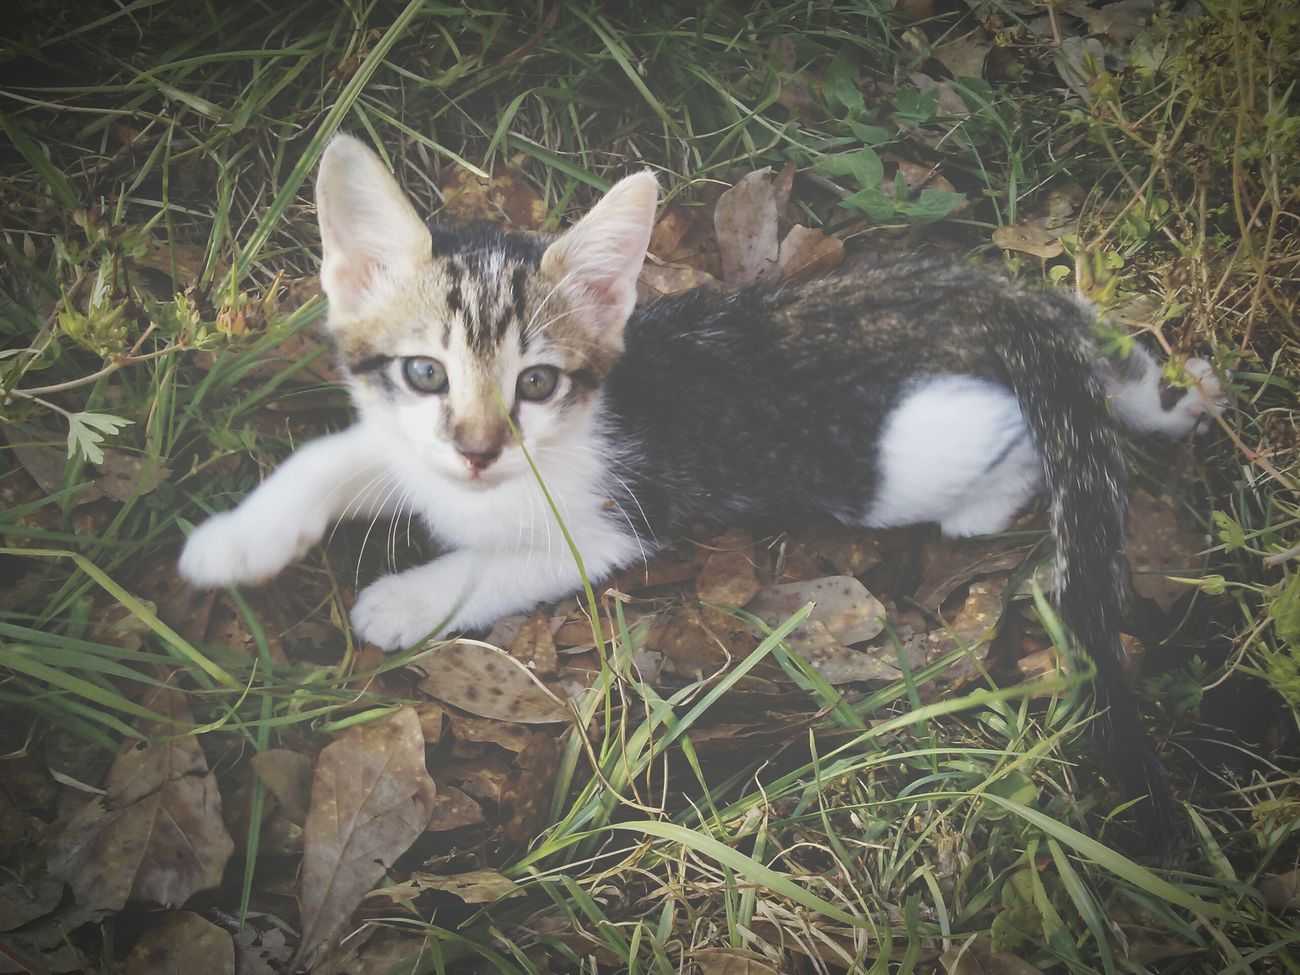 Domestic Cat Pets Feline Animal Themes One Animal High Angle View Portrait Looking At Camera Outdoors No People Sitting Kitten Grass